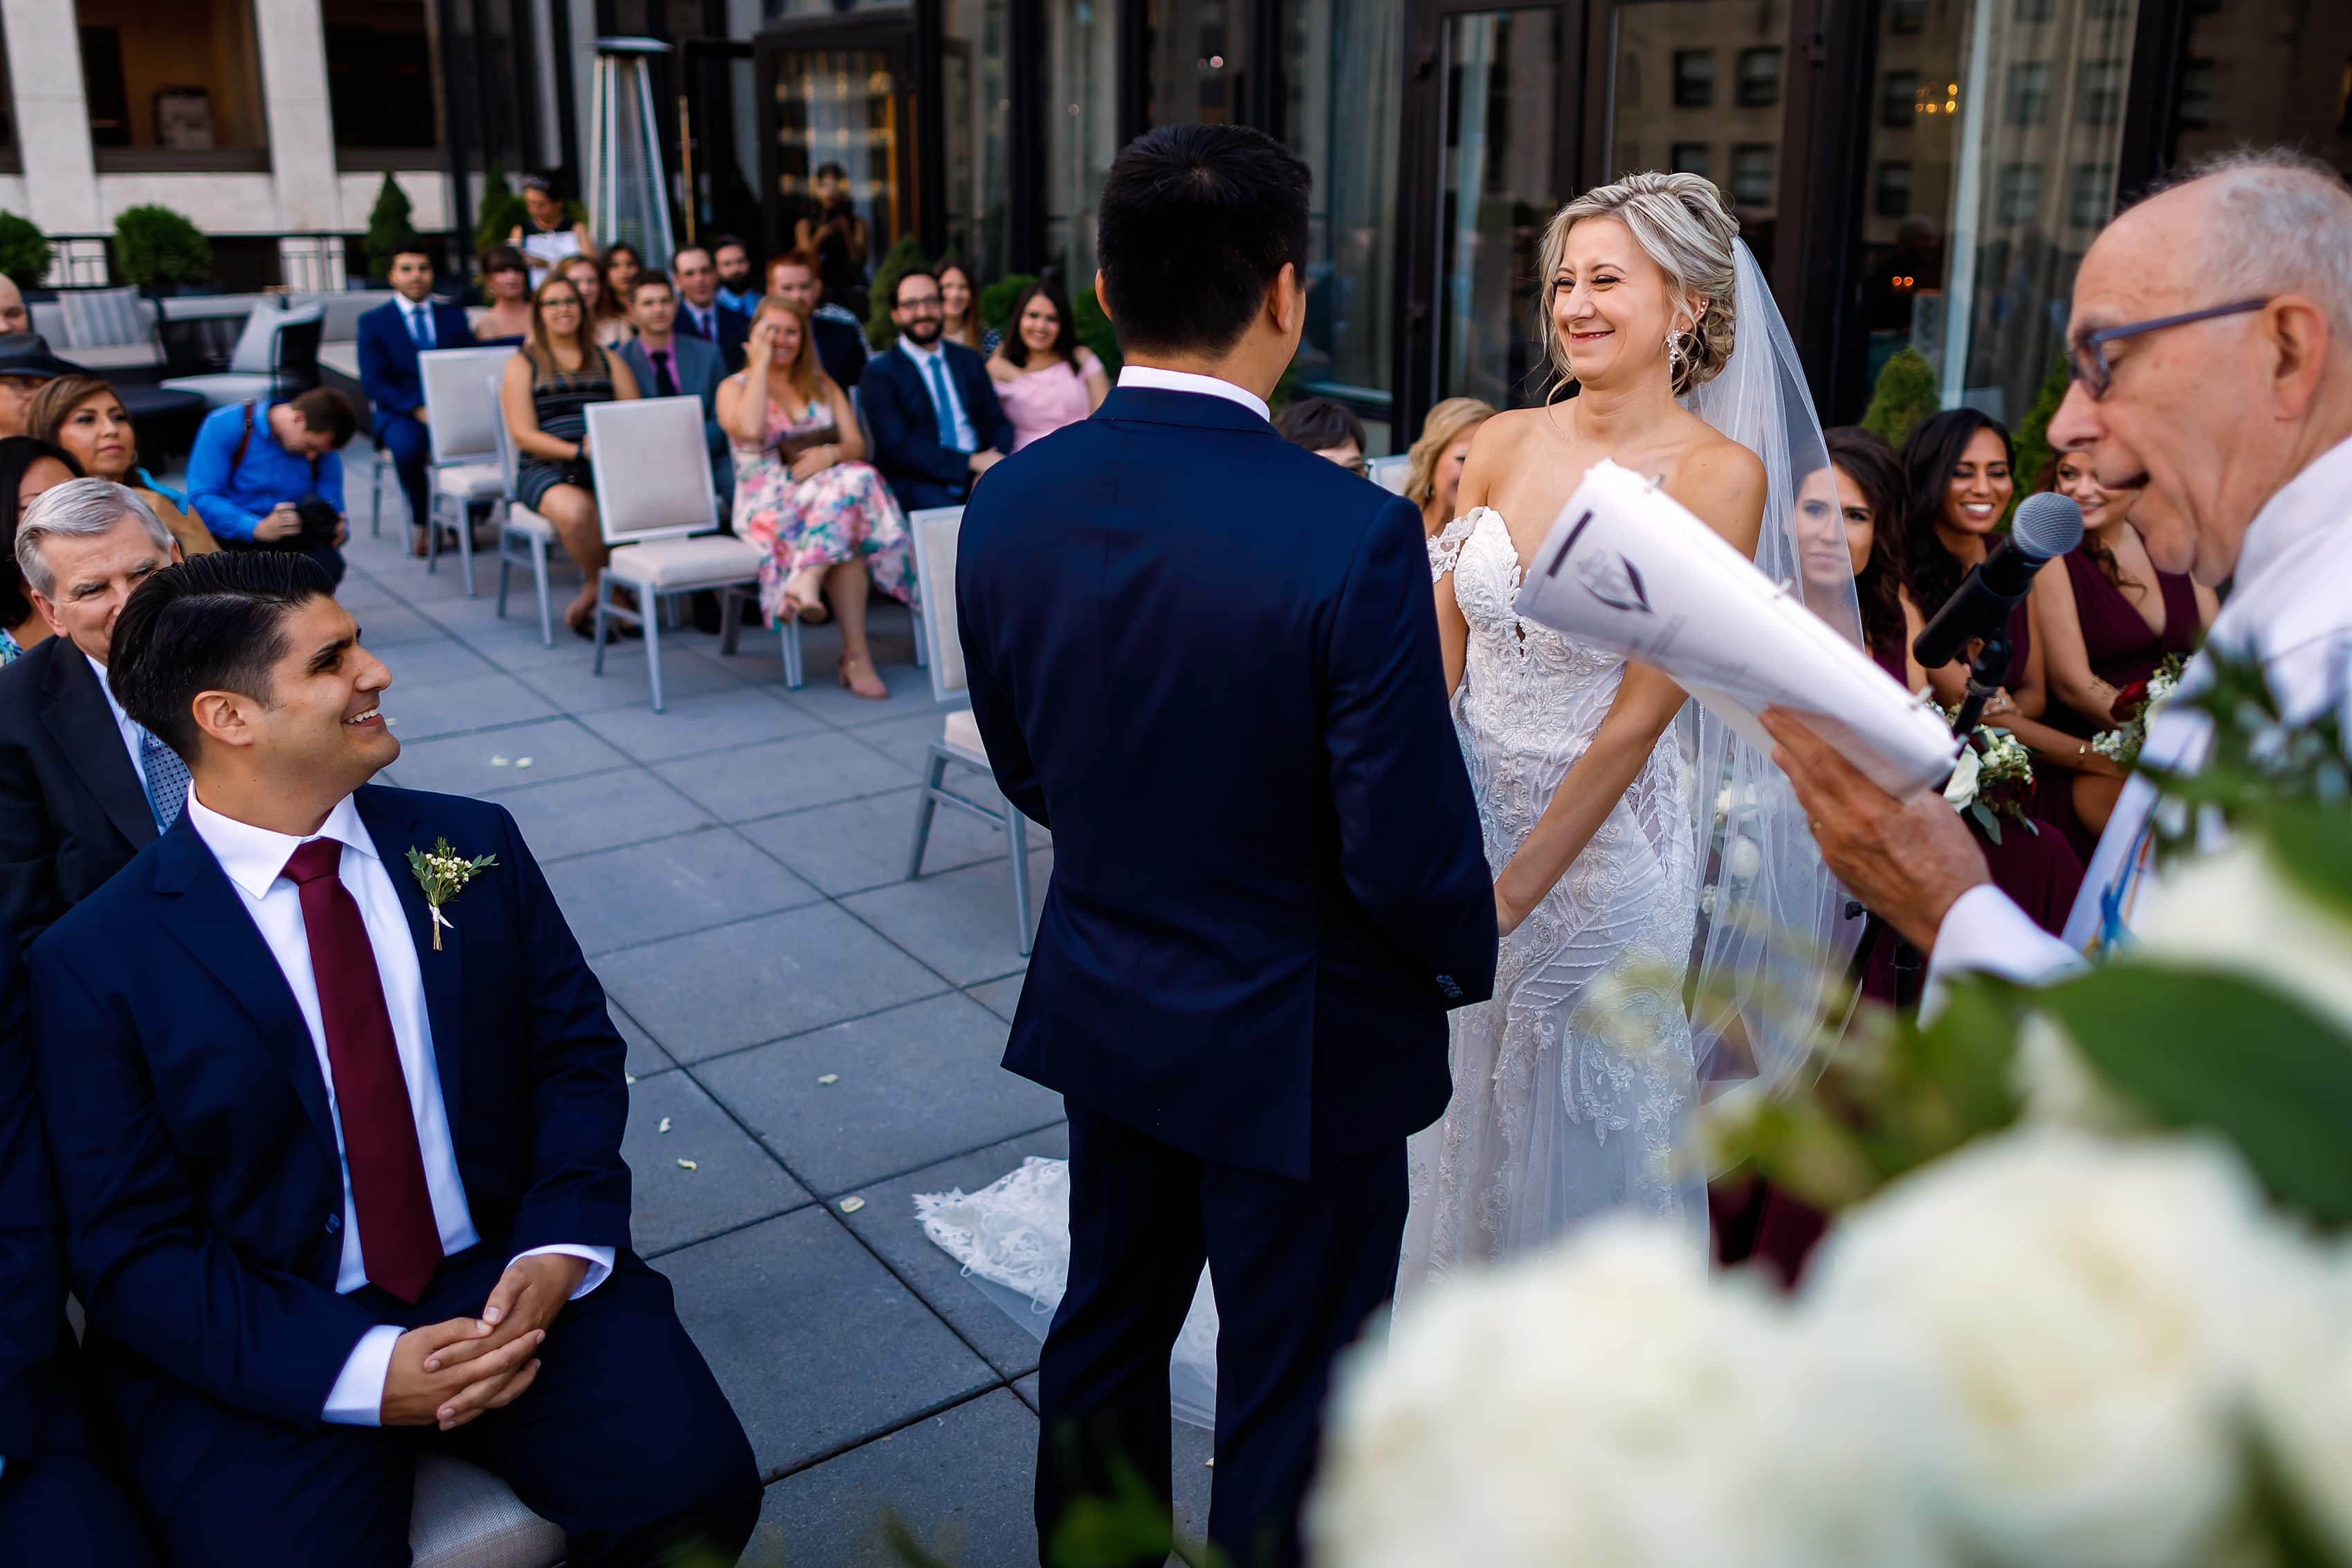 Bride and groom laugh during wedding ceremony on the patio of the Lux Suite at The Gwen Hotel in downtown Chicago